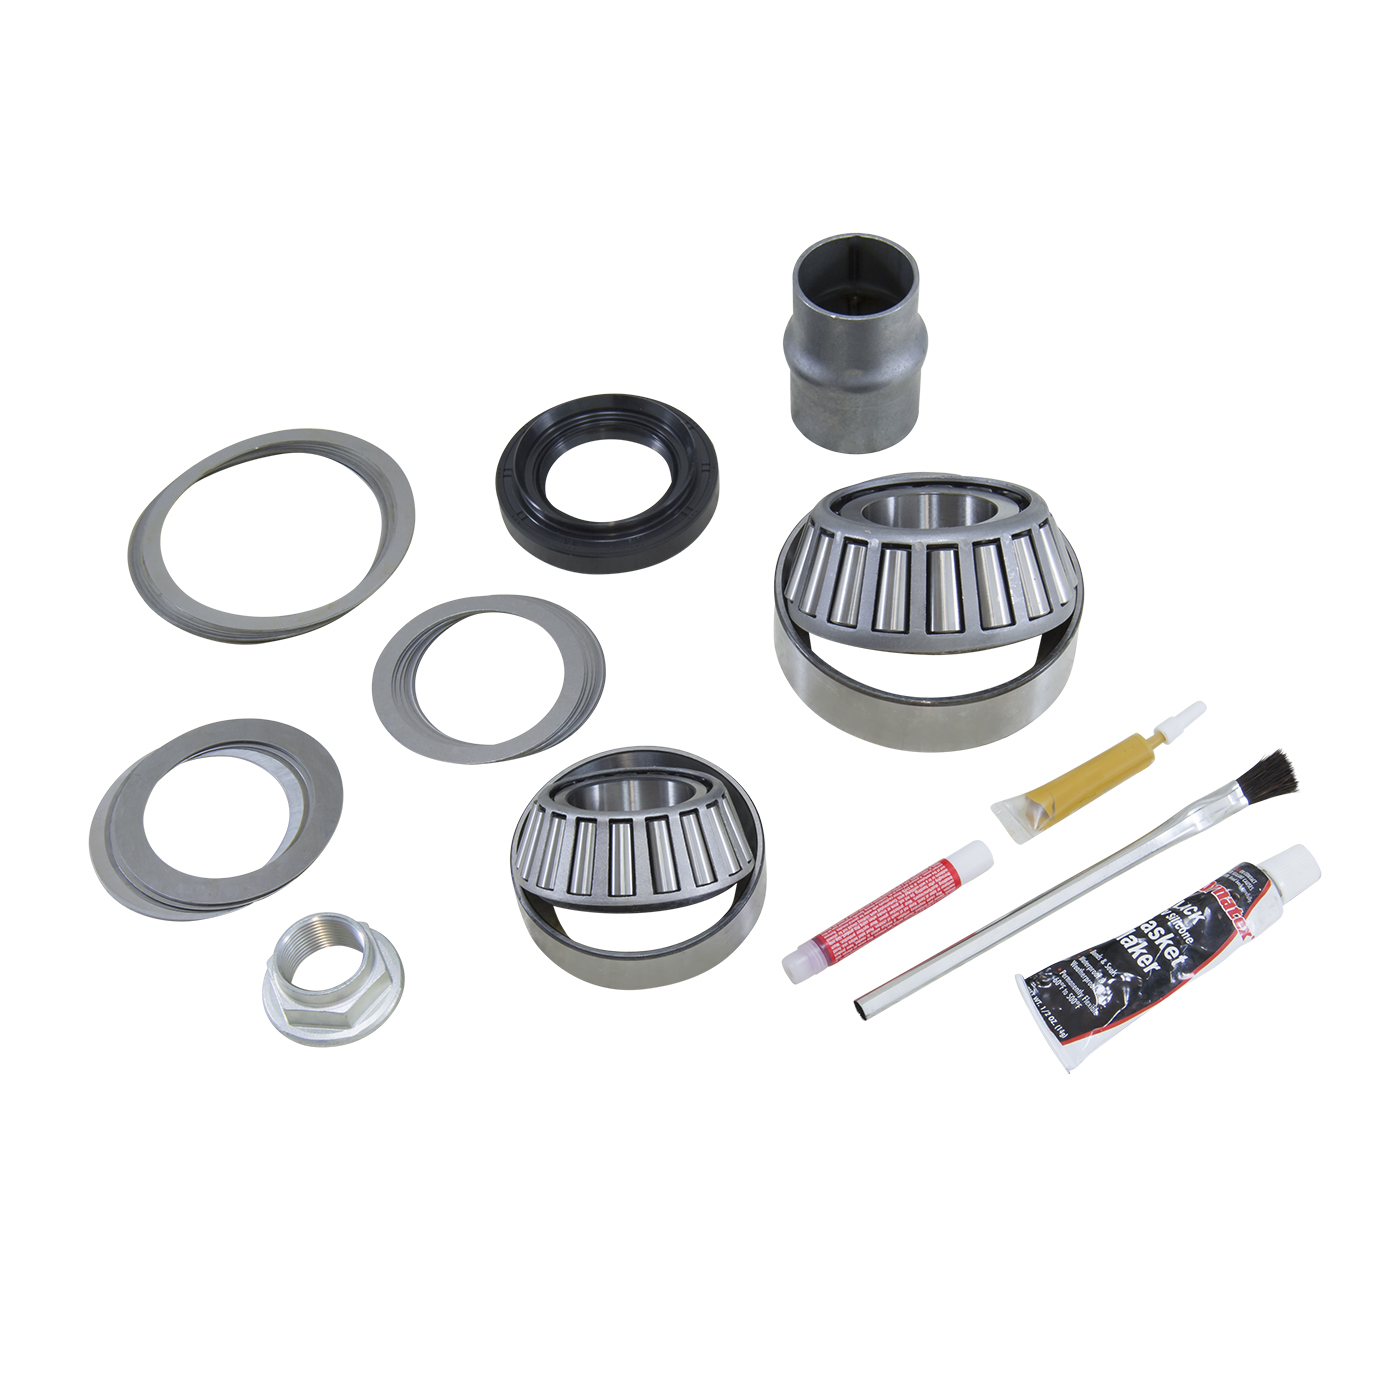 PK T100 - Yukon Pinion install kit for Toyota T100 and Tacoma (without locking differential)